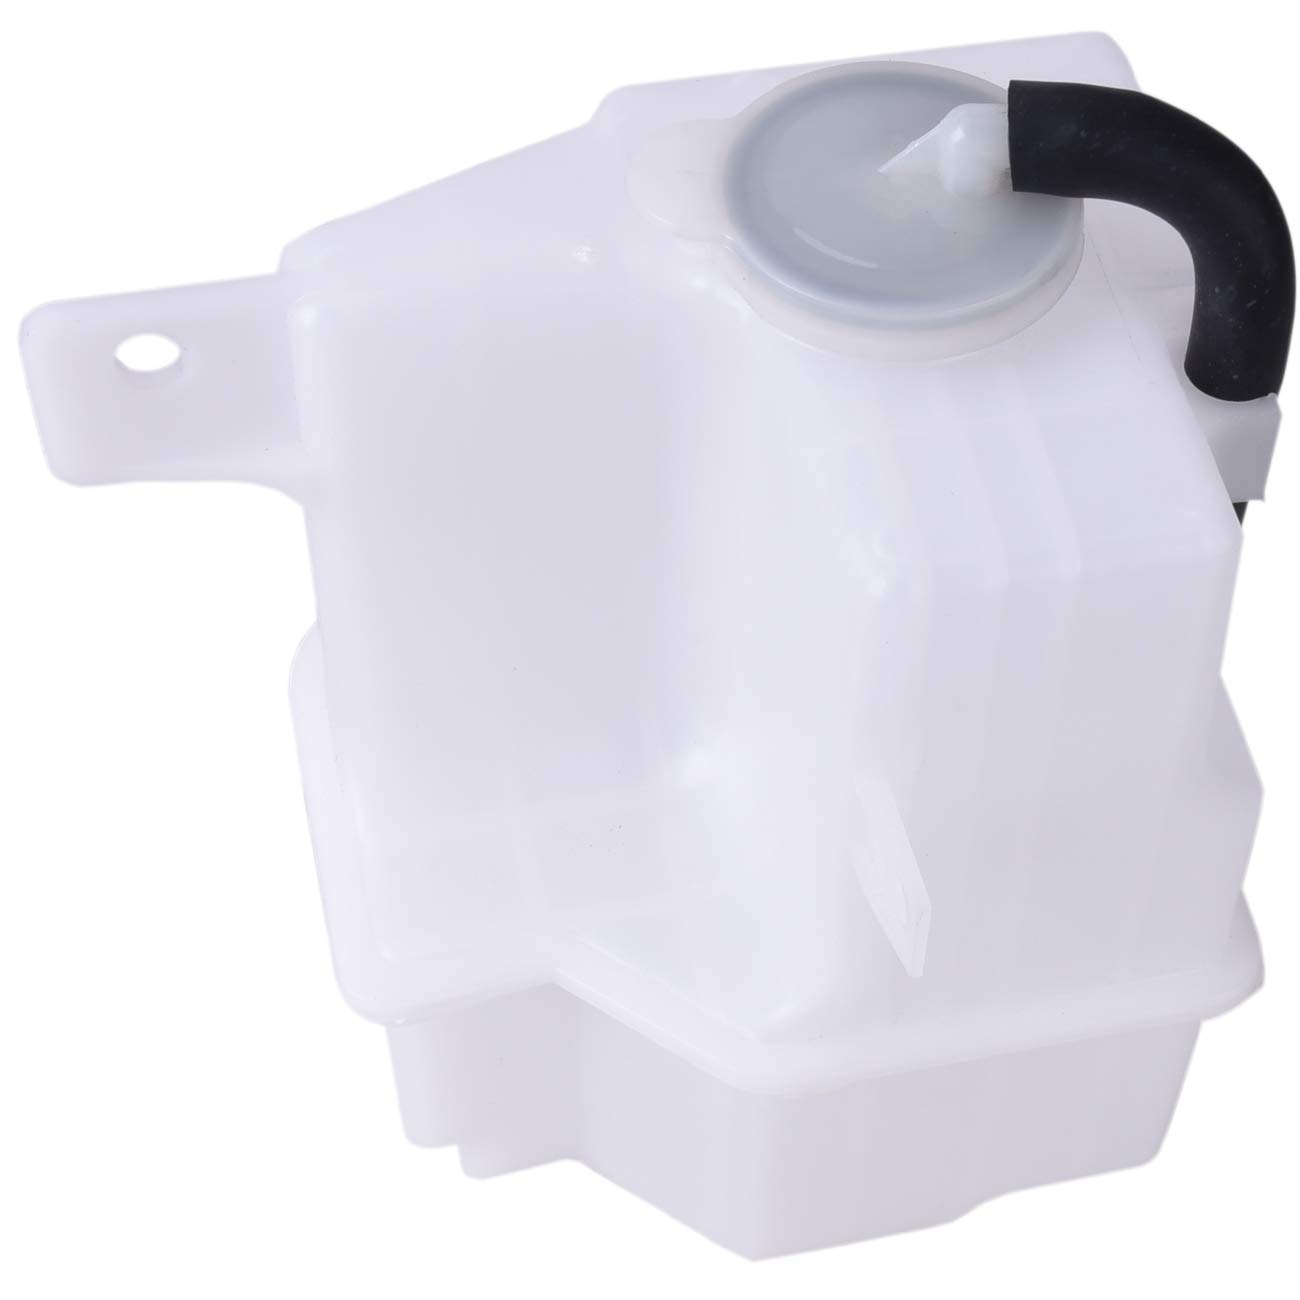 Bapmic B6BF-15-350B Radiator Coolant Overflow Reservoir Recovery Bottle Tank for Mazda Protege Protege5